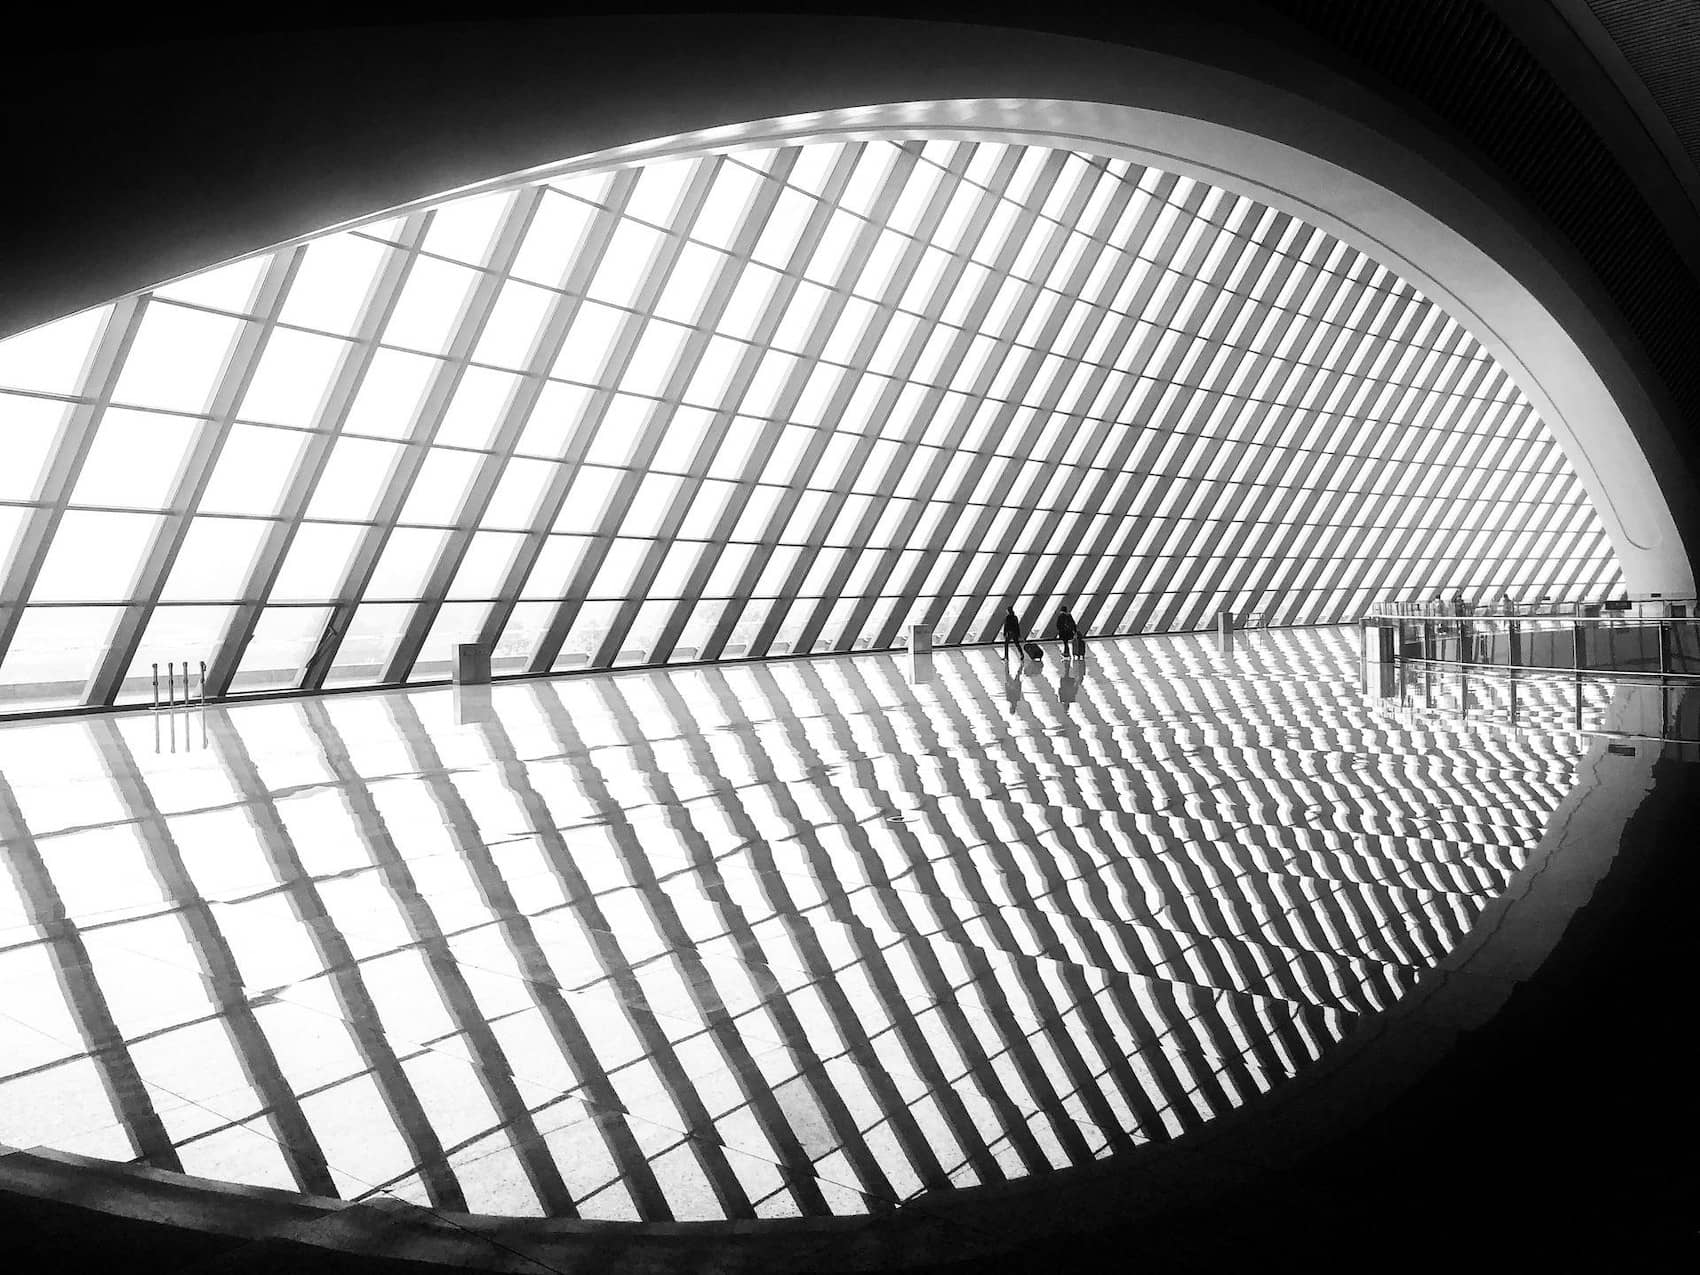 Black and White Architecture Photography - Interior Museum